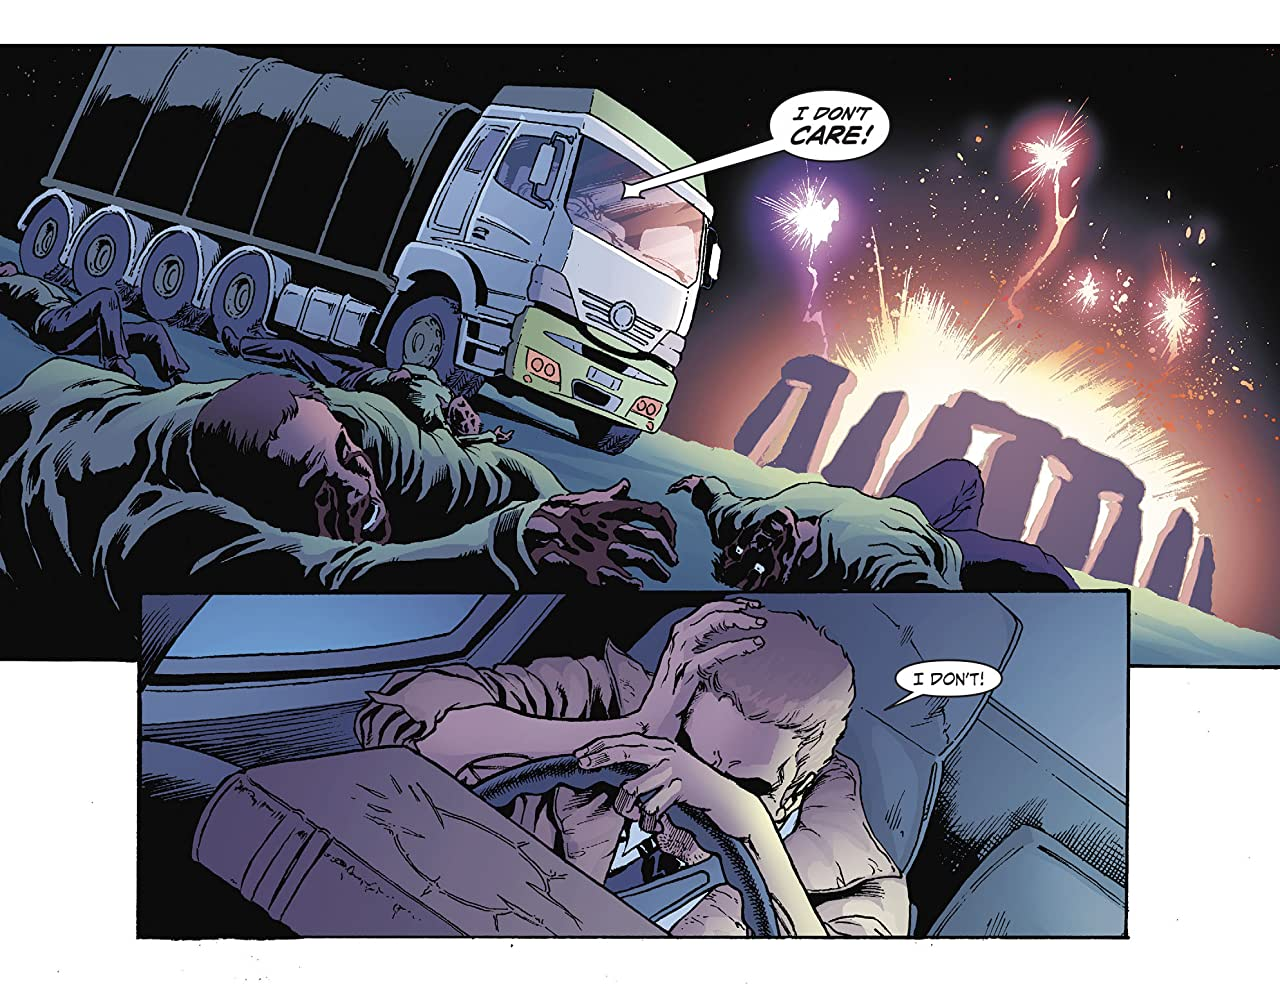 Smallville: Harbinger #4